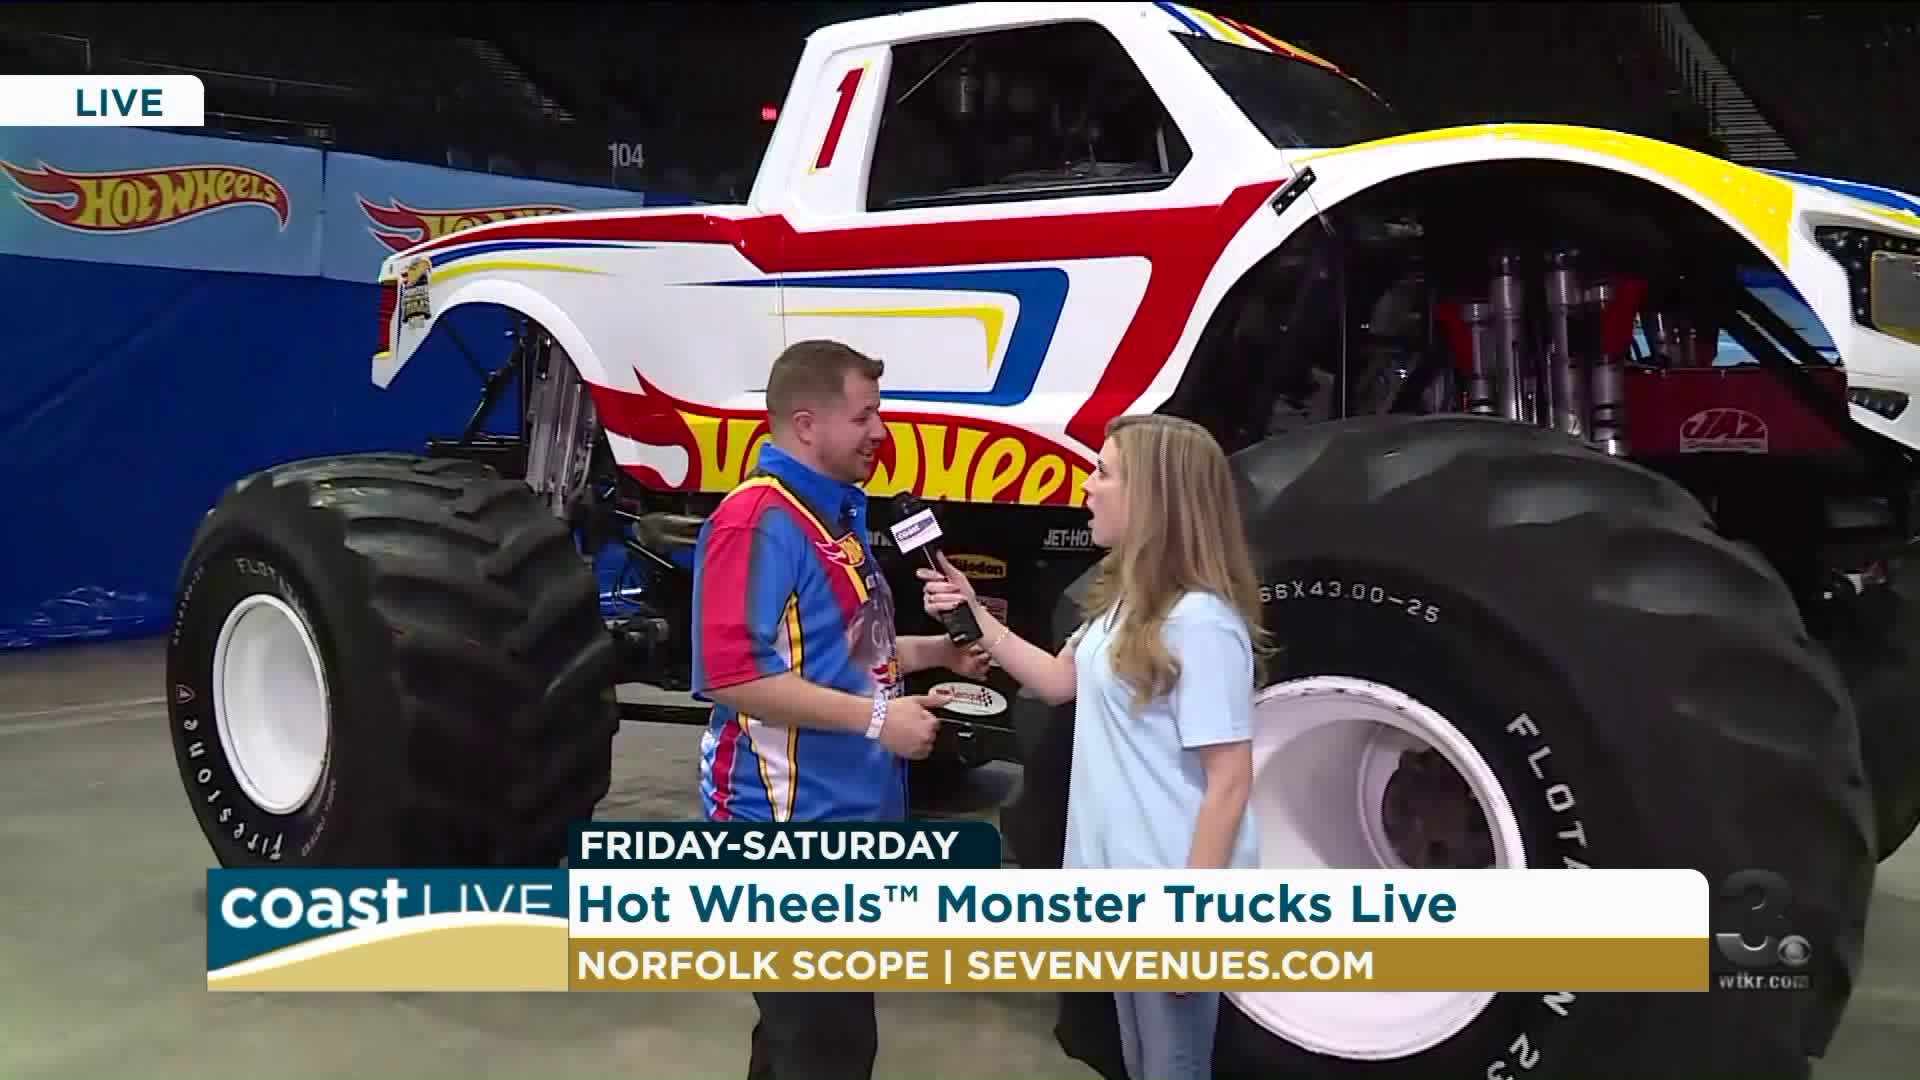 A Preview Of The Hot Wheels Monster Truck Show Live On Coast Live